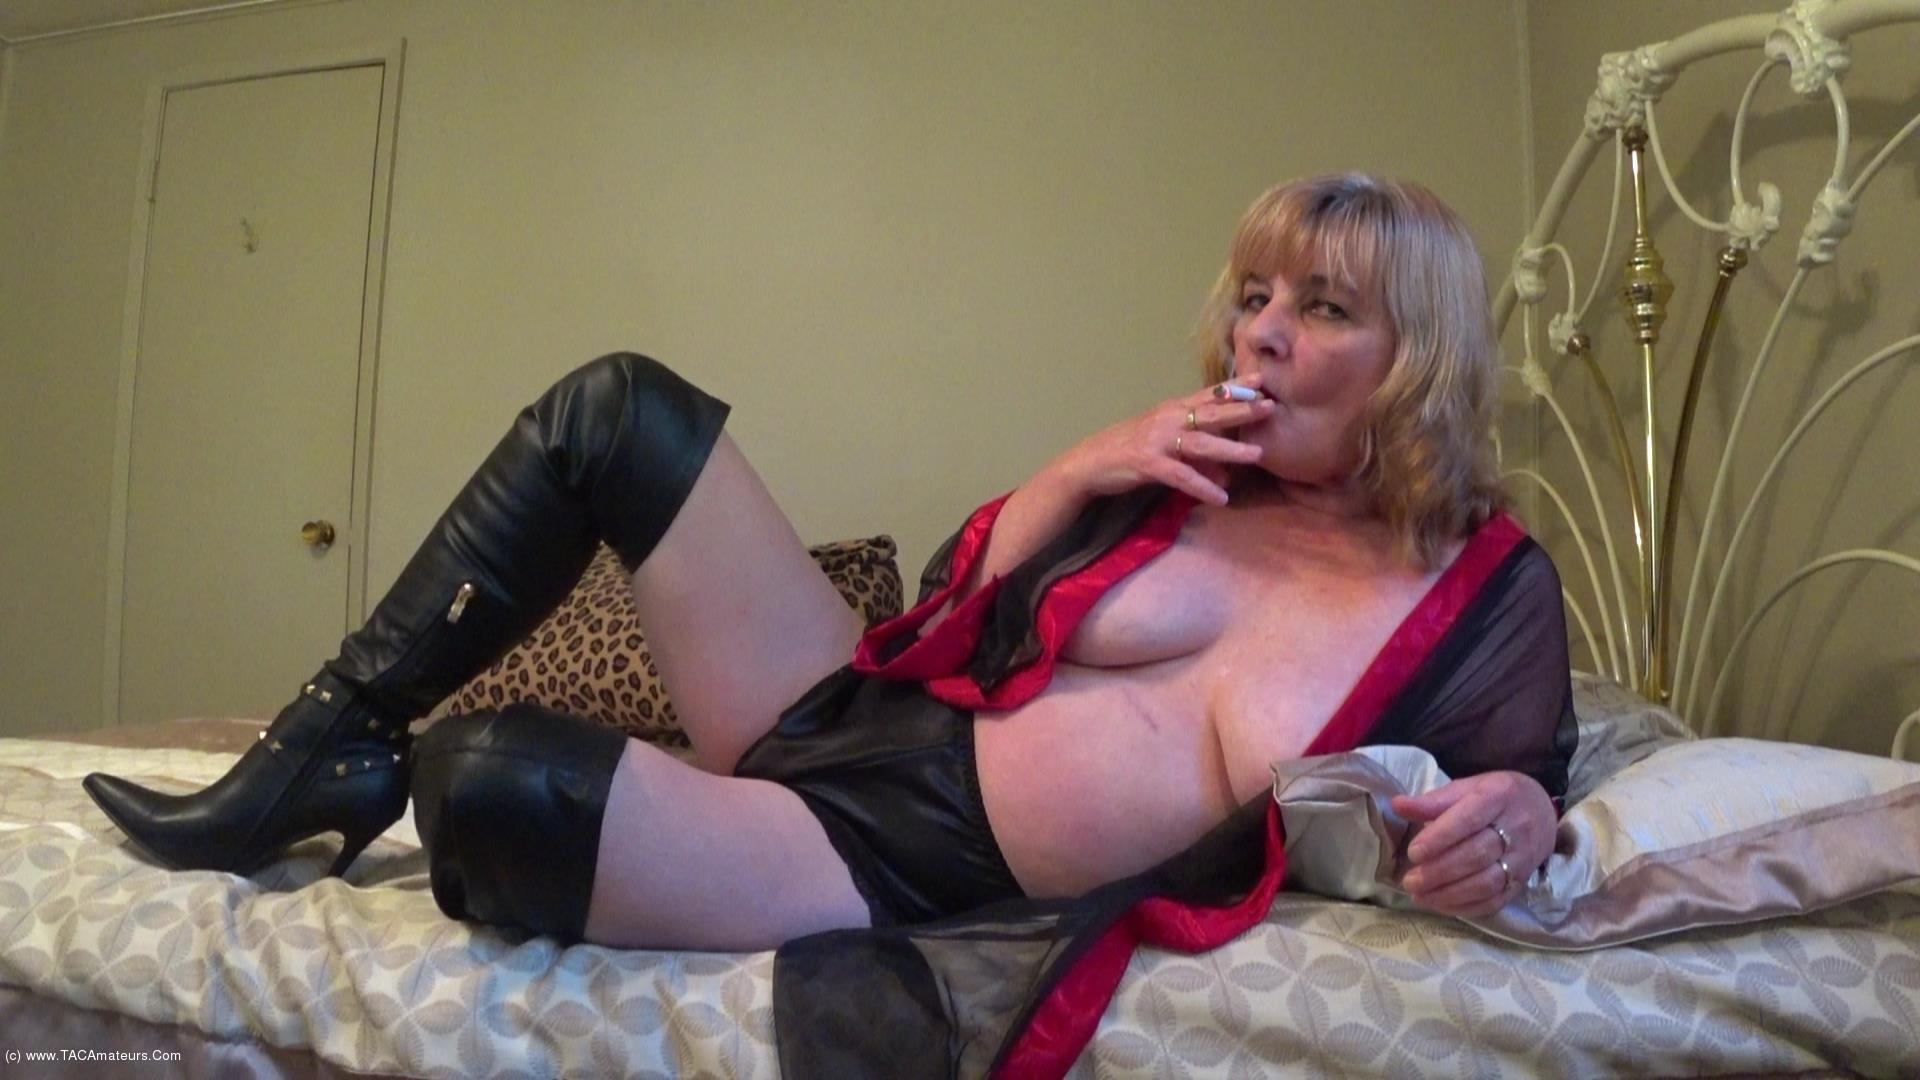 CougarBabeJolee - In Lingerie & Boots, Smoking While You Stroke scene 2